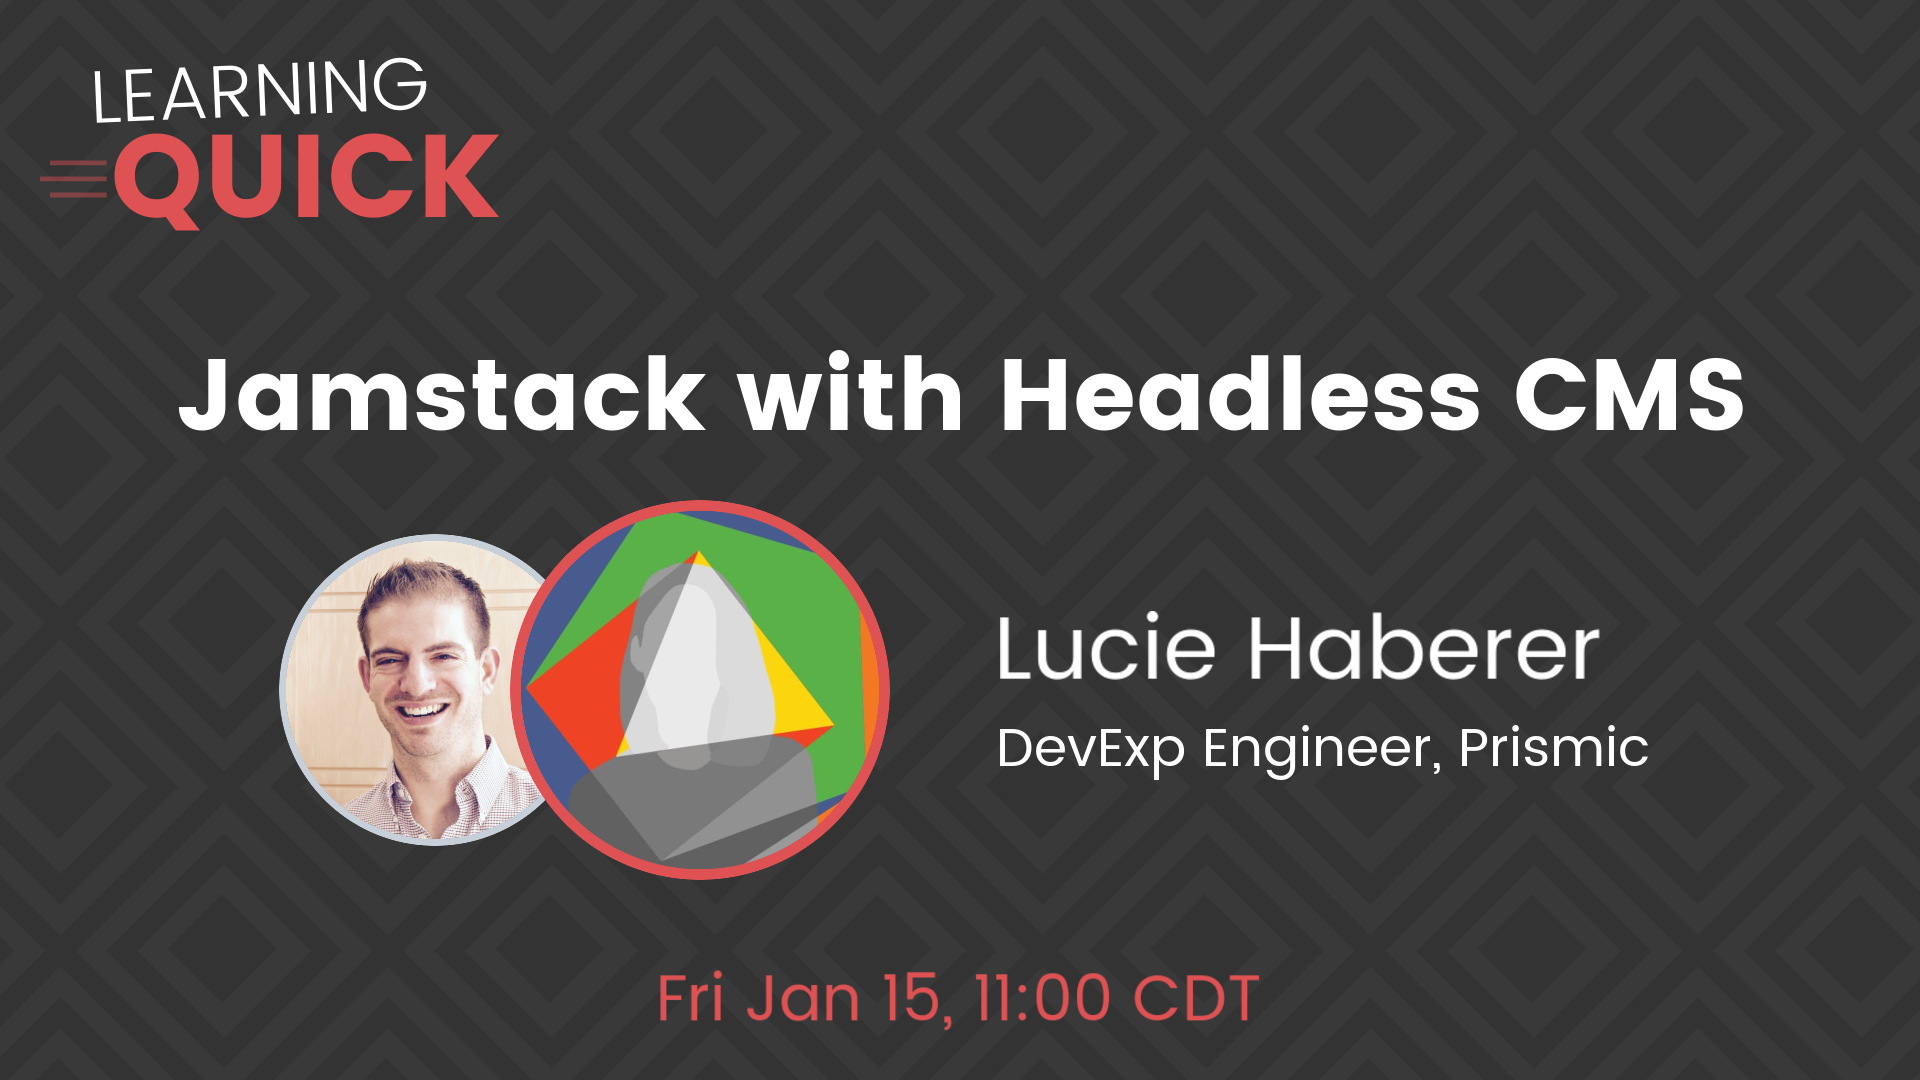 Dynamic Jamstack with Headless CMS with Lucie